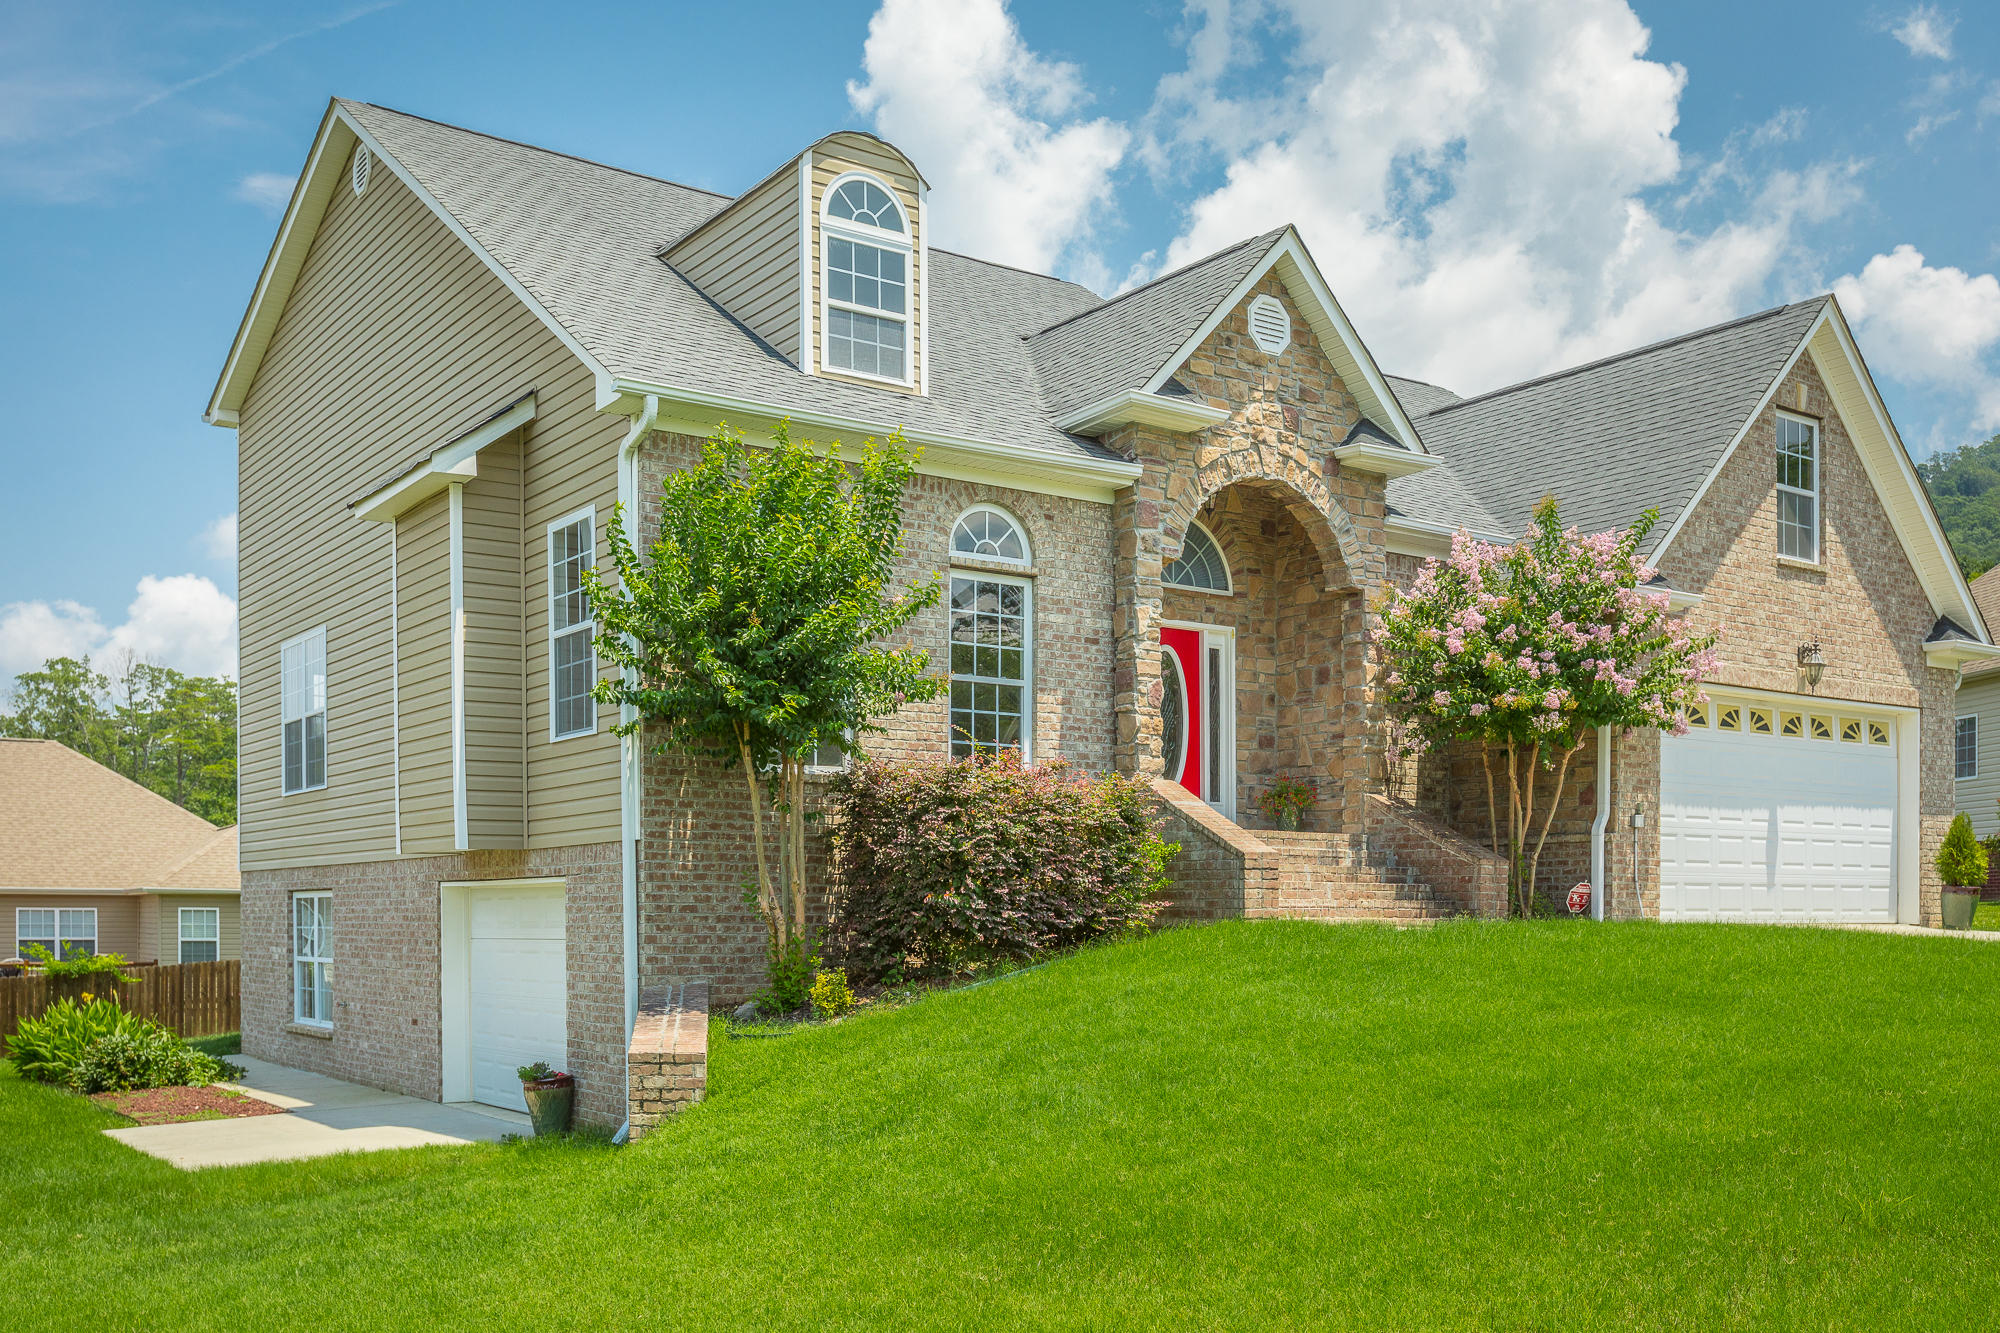 7661 Duskview Ct Chattanooga #homeforsaleinchattanooga, #ChattanoogaHomeForSale, #ThePaulaMcDanielGroup, #Chattanoogarealestateforsale, #Chattanoogarealestateforsale, #allbrickhomeforsale#, ThePaulaMcDanielGroup, #homeforsalewith - The Paula McDaniel Group With Real Estate Partners Chattanooga LLC Luxury homes for sale in Chattanooga and N. GA by The Paula McDaniel Group. Chattanooga homes and land for sale by The Paula McDaniel Group with Real Estate Partners Chattanooga LLC